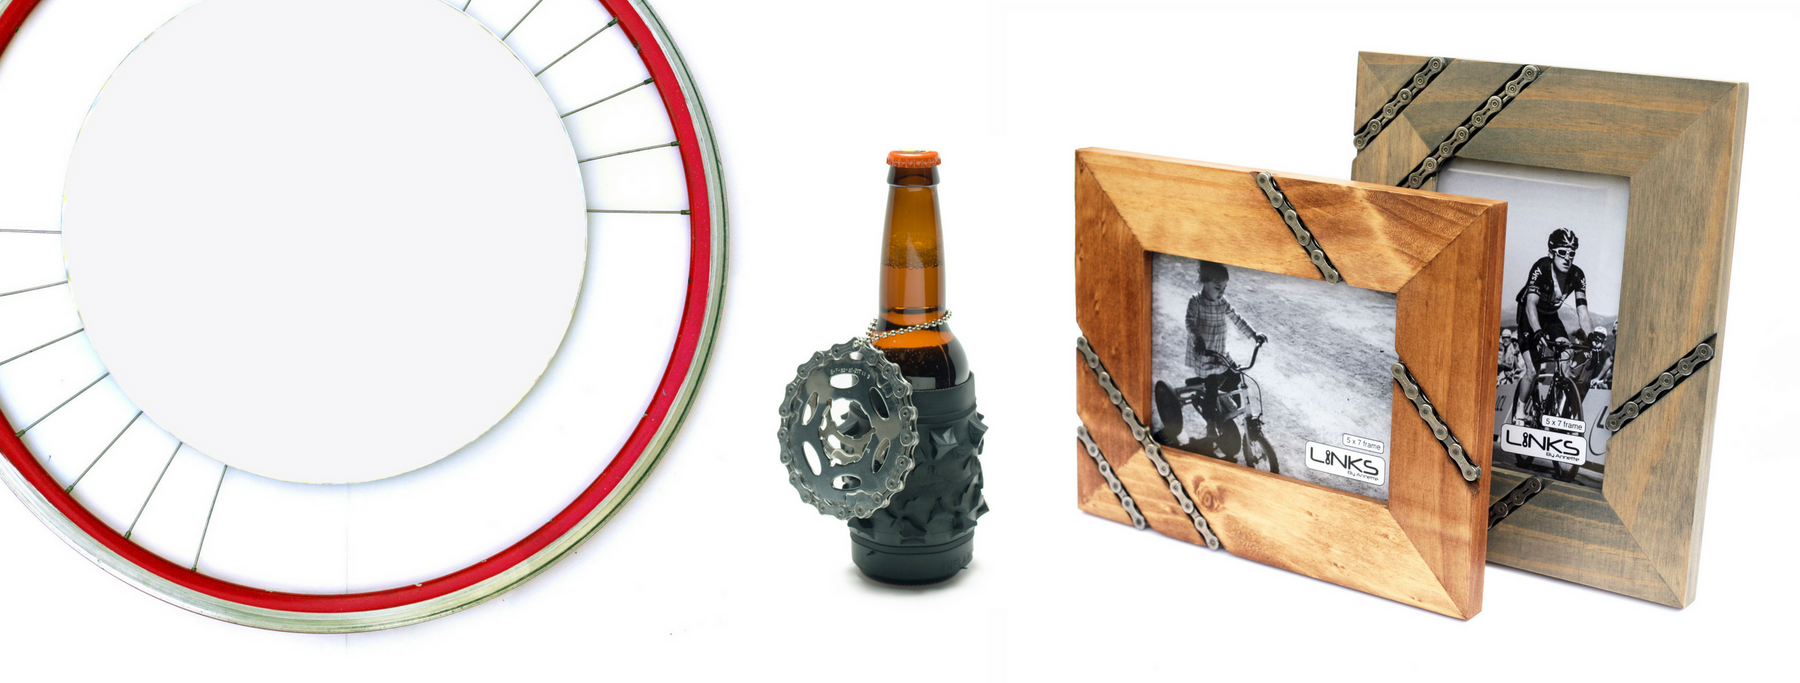 repurposed bicycle parts made awesome red bike rim mirror with spokes knobby mountain bike tire koozie gear bottle opener bike chain picture frames